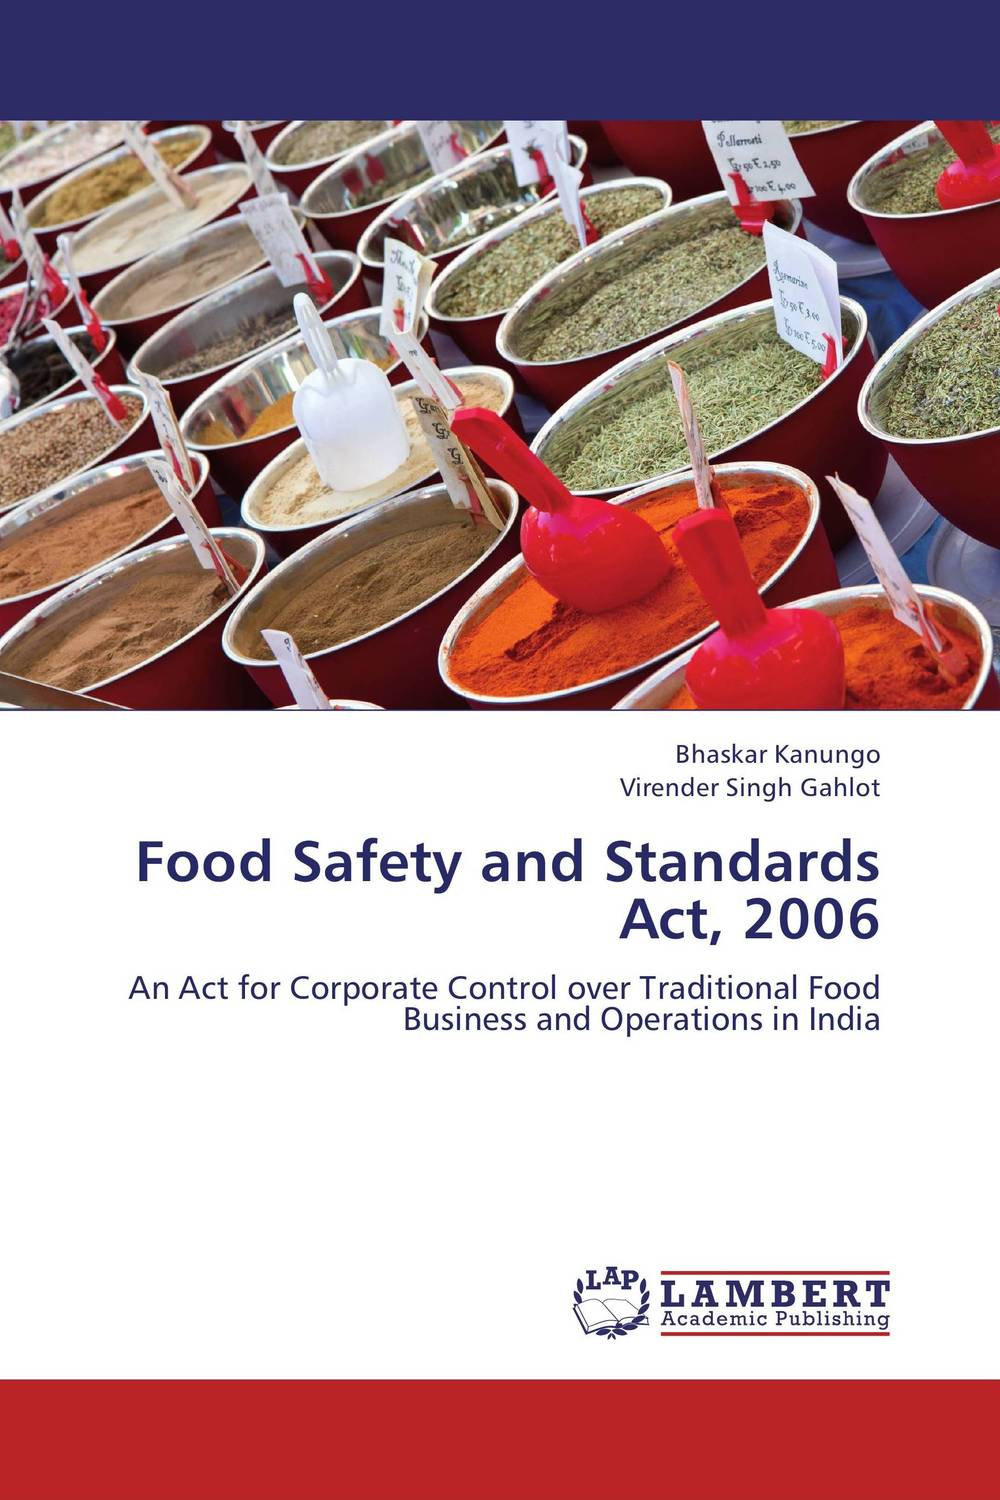 Food Safety and Standards Act, 2006 assessment of patient and staff safety standards in india